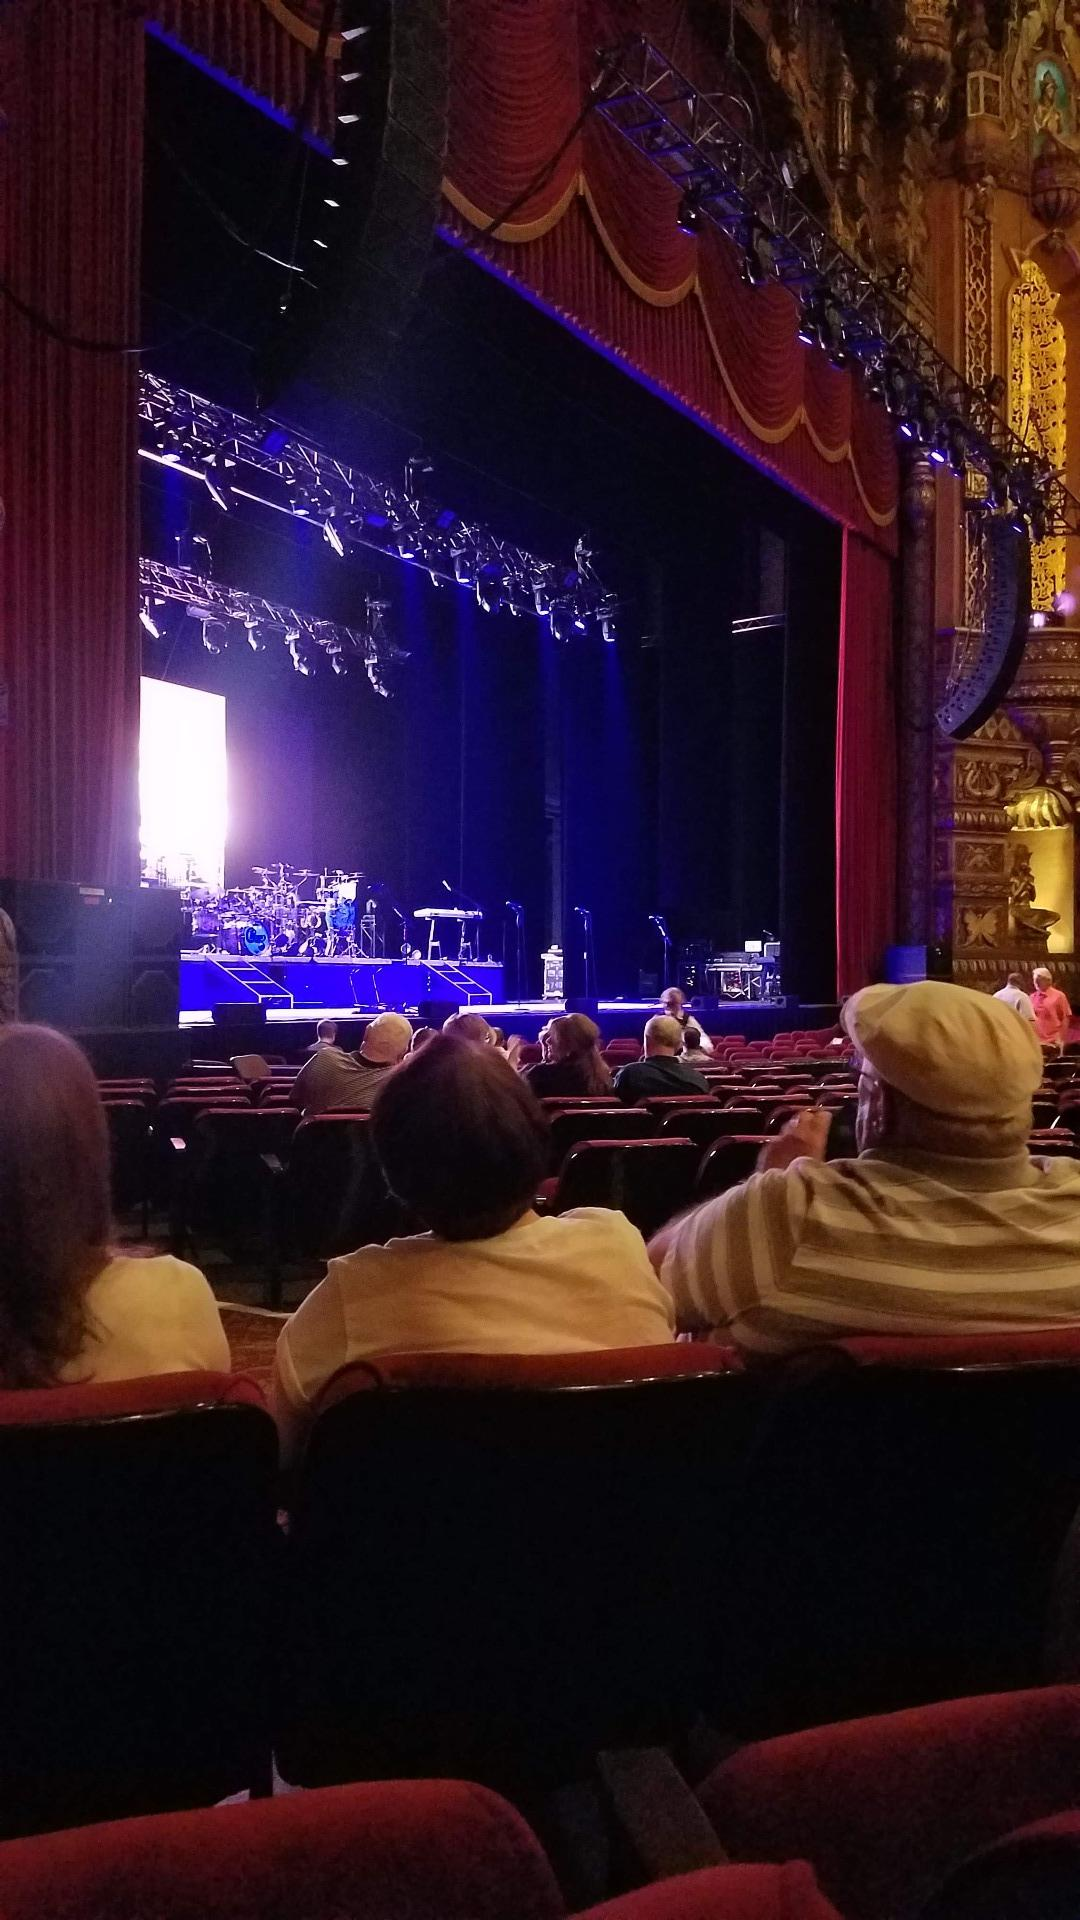 The Fabulous Fox Theatre (St. Louis) Section Orchestra 1 Row L Seat 43